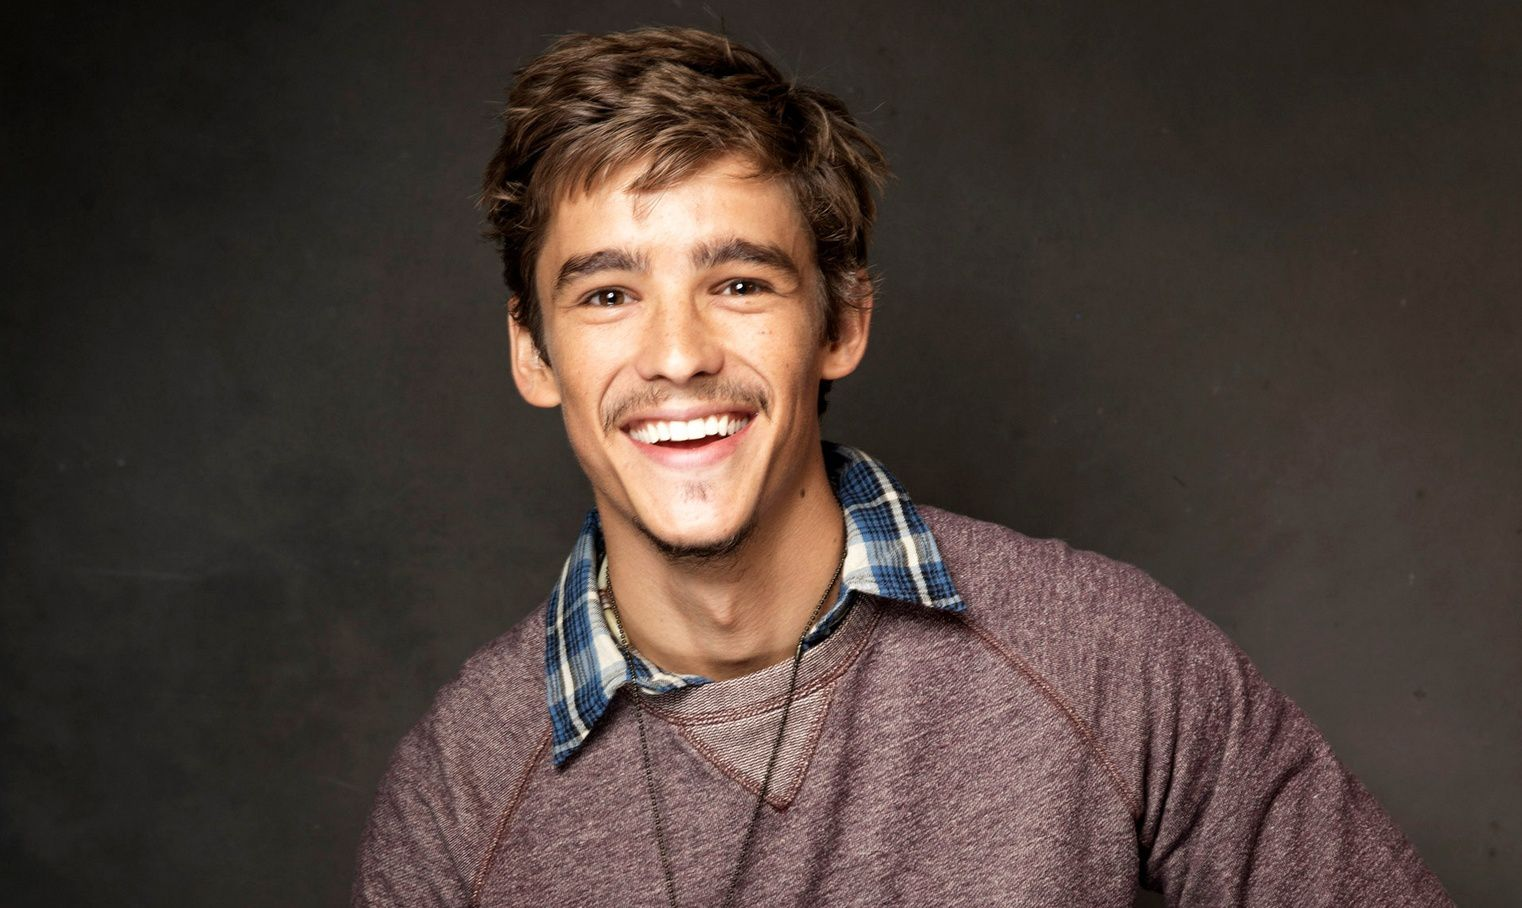 Brenton Thwaites (The Giver) rejoint Pirates des Caraïbes 5